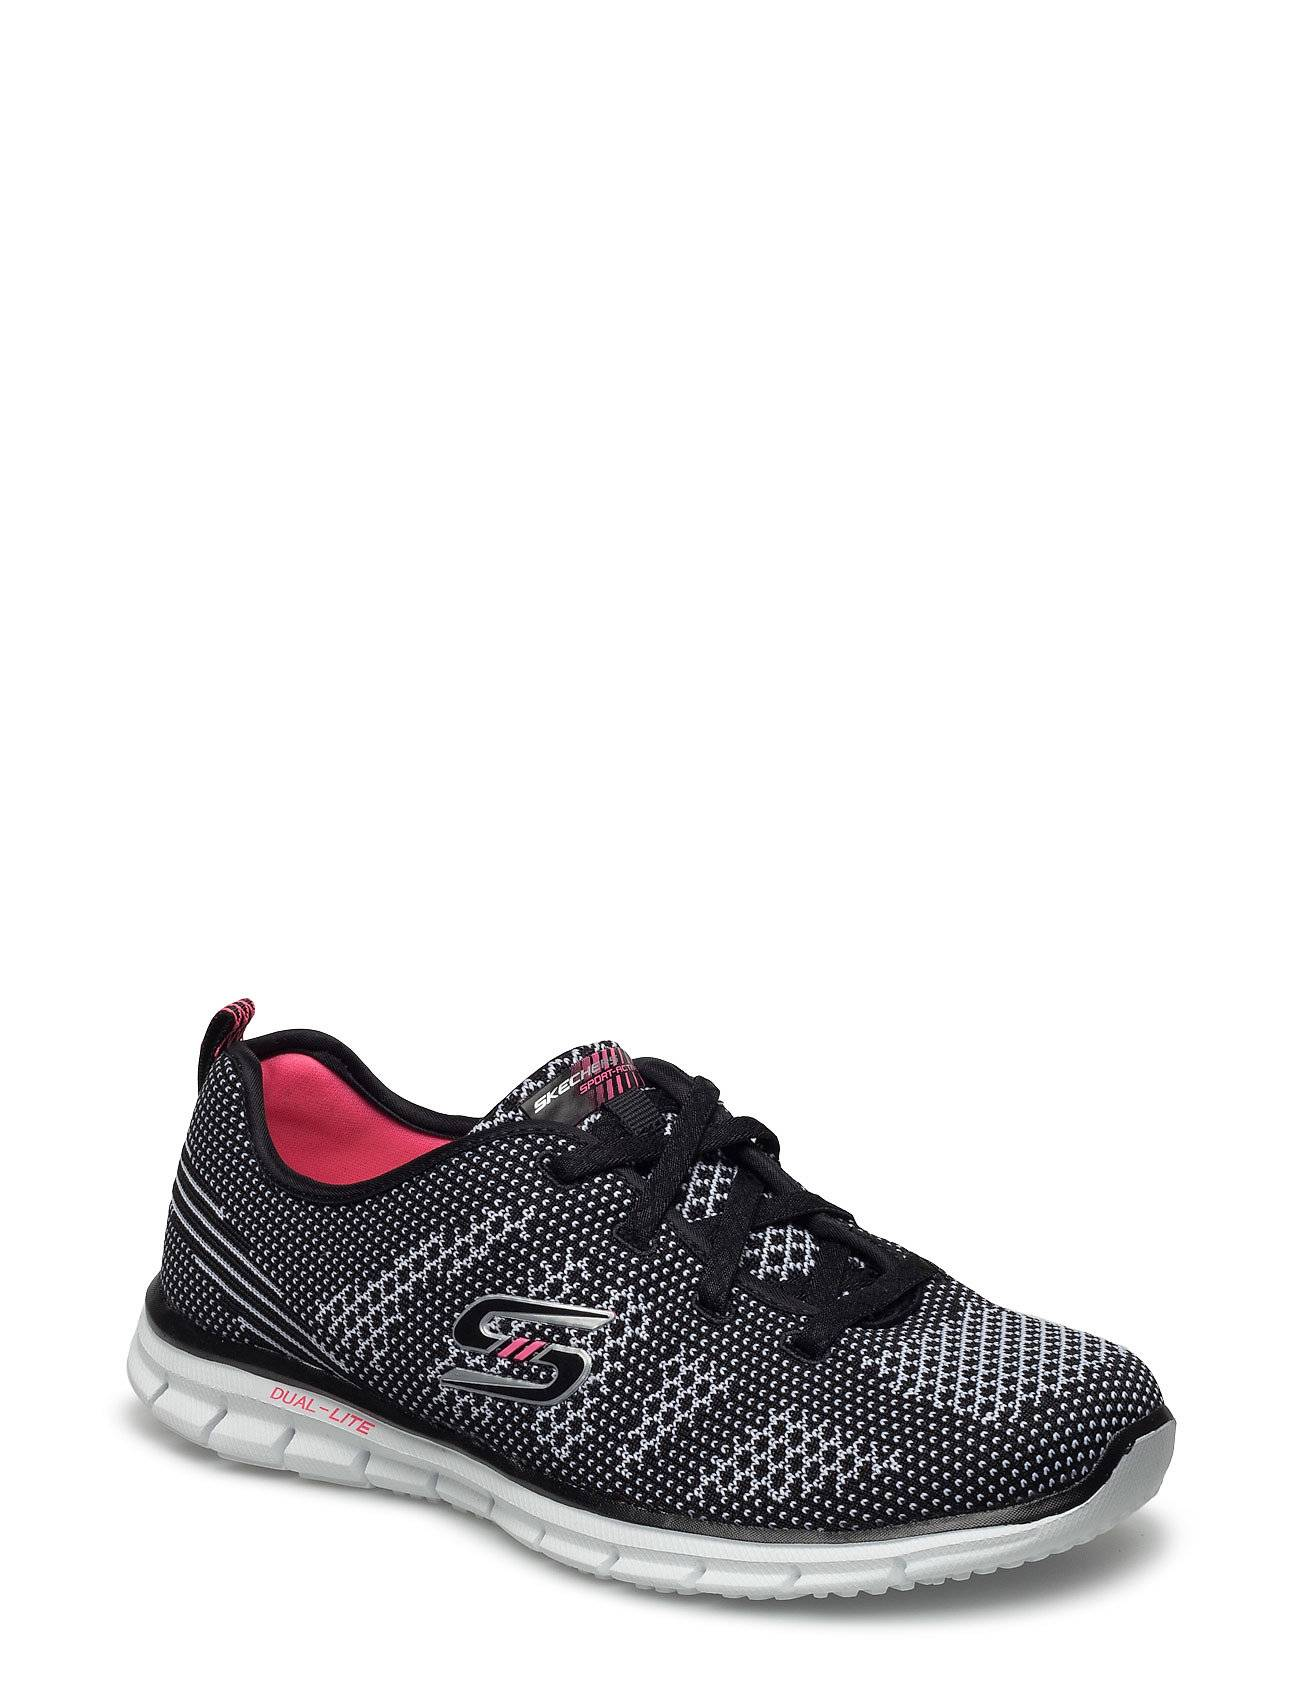 Skechers Womans Gilder - Forever Young